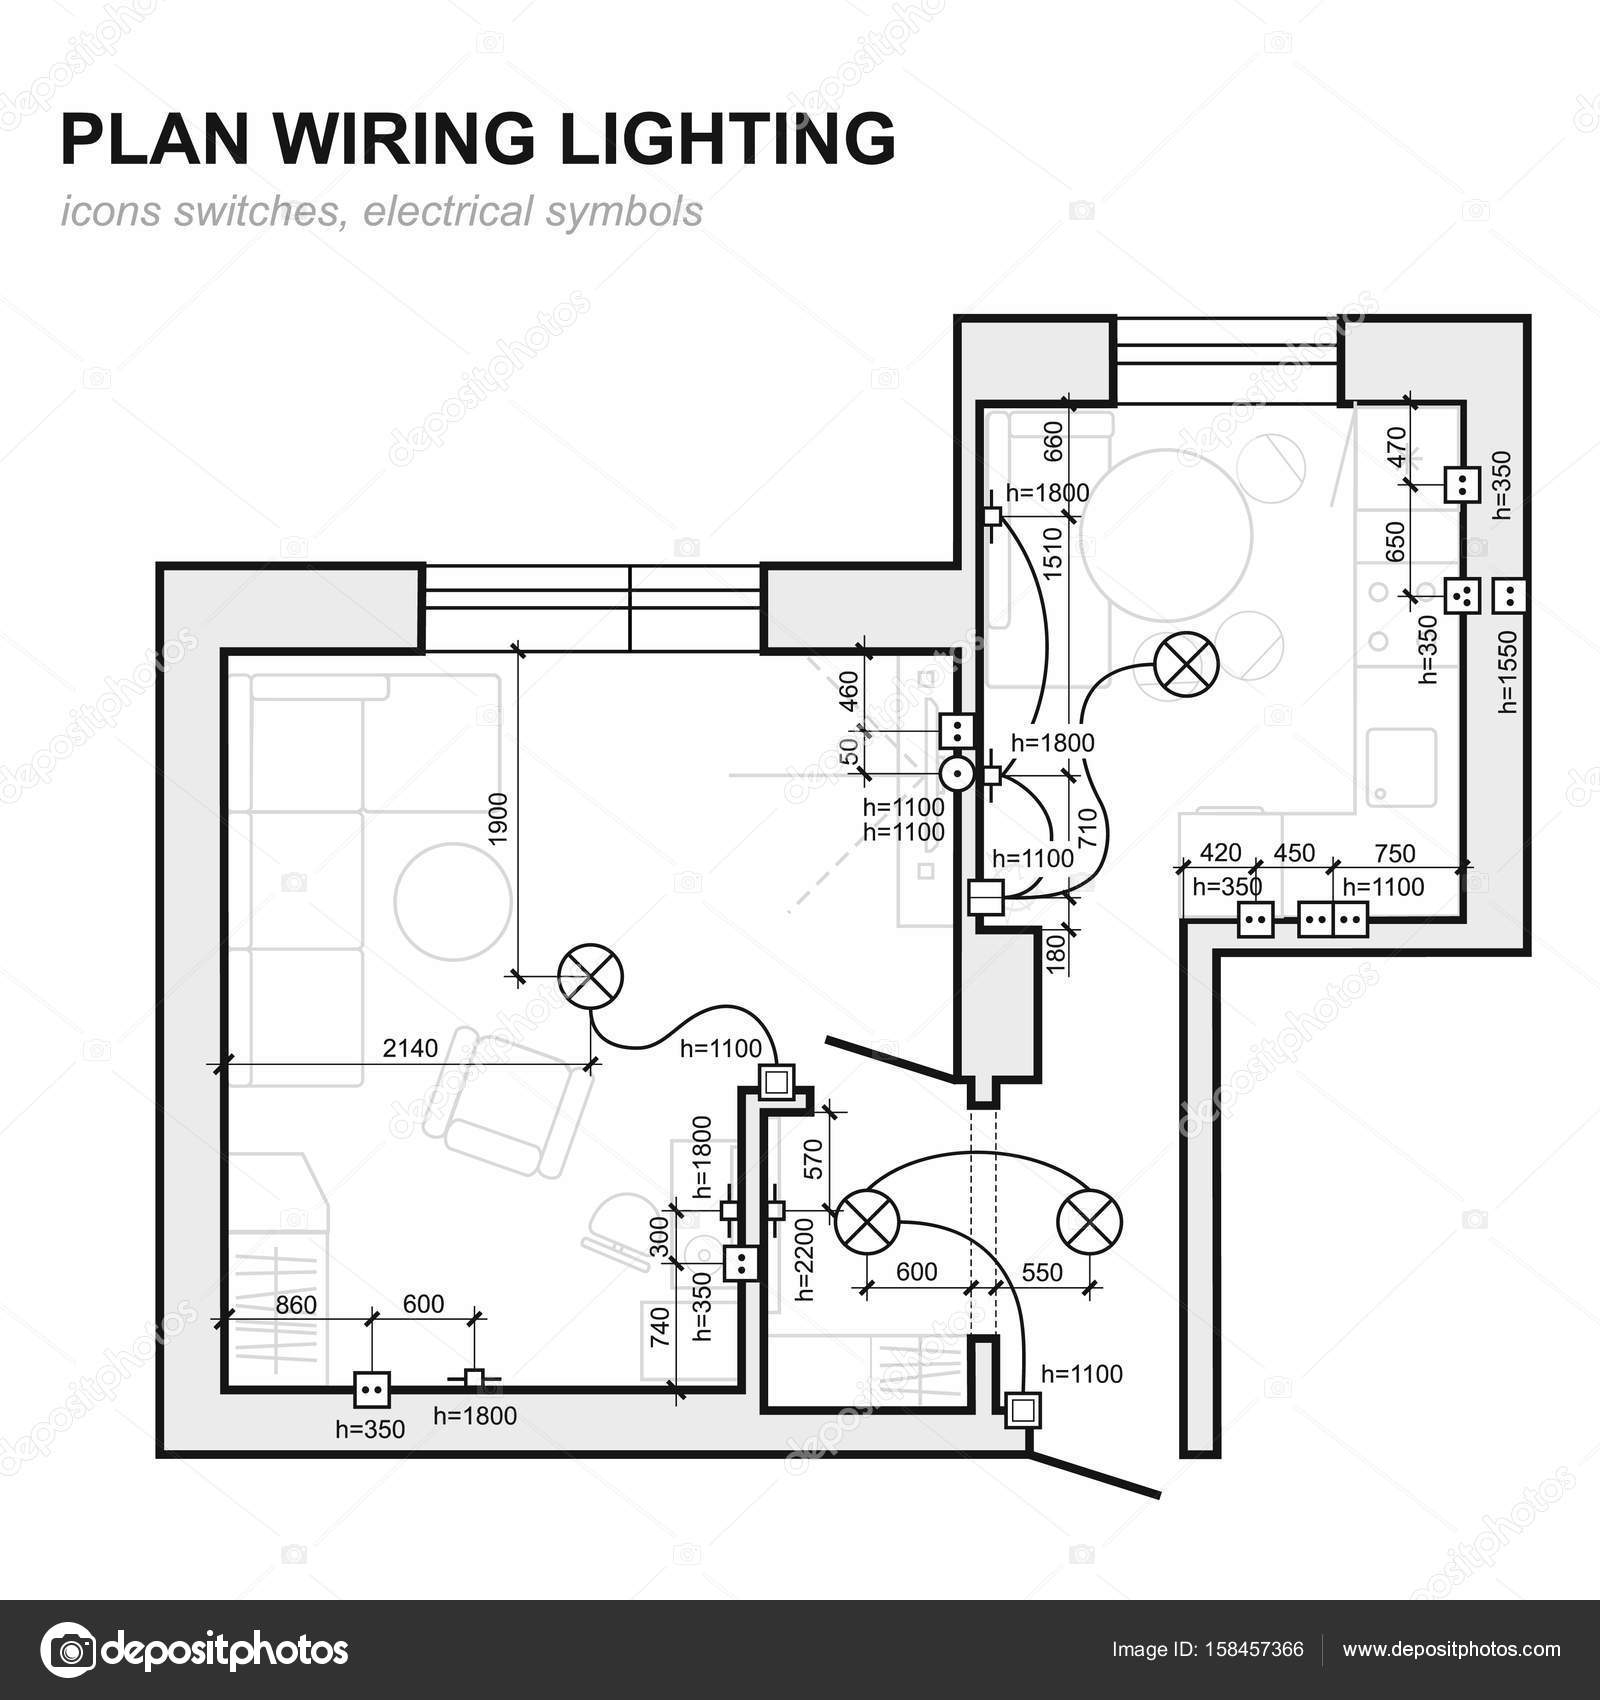 plan wiring lighting electrical schematic interior set of standard rh depositphotos com Basic Electrical Wiring Diagrams Wiring Schematics for Cars